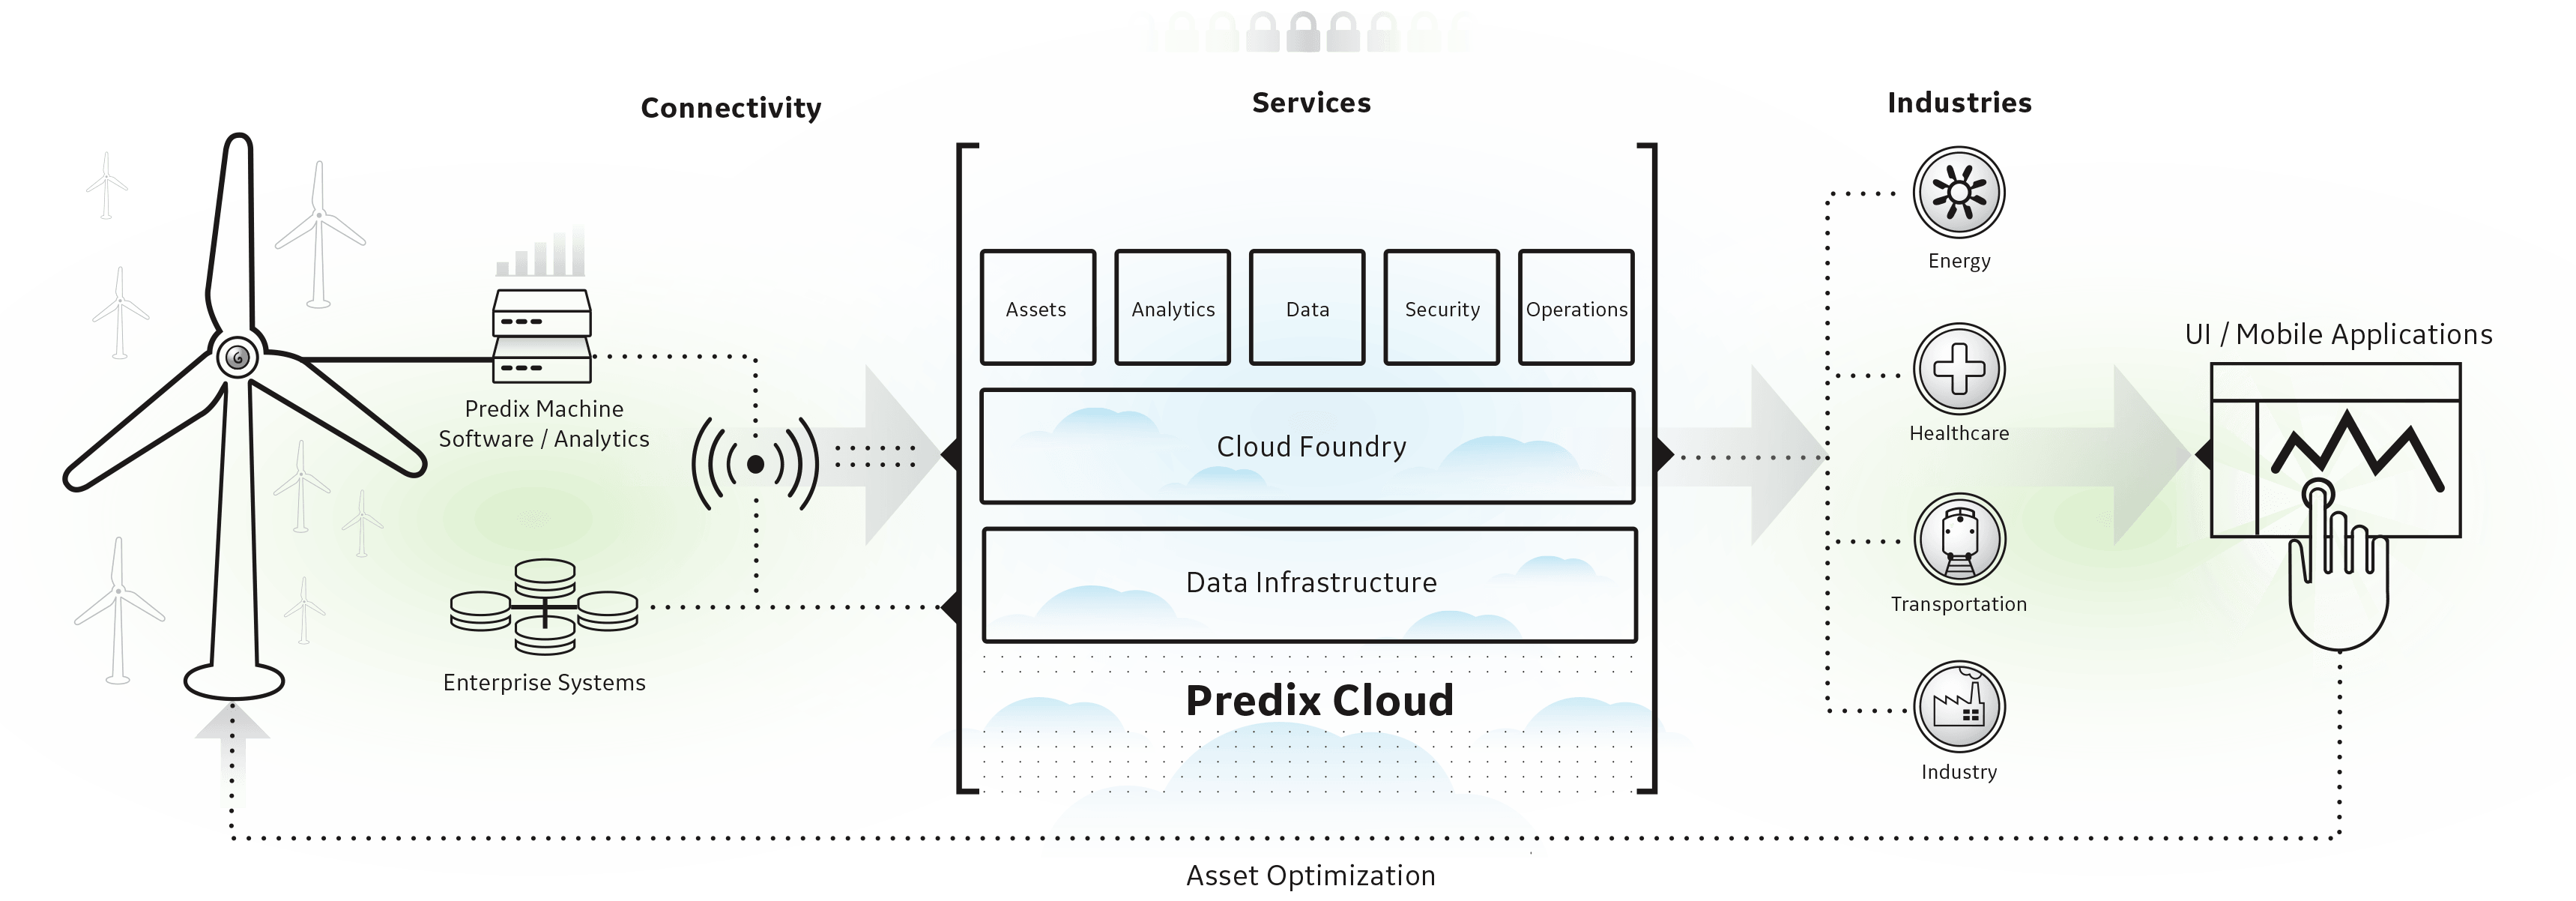 Predix Turning Data Into Insights And Insights Into